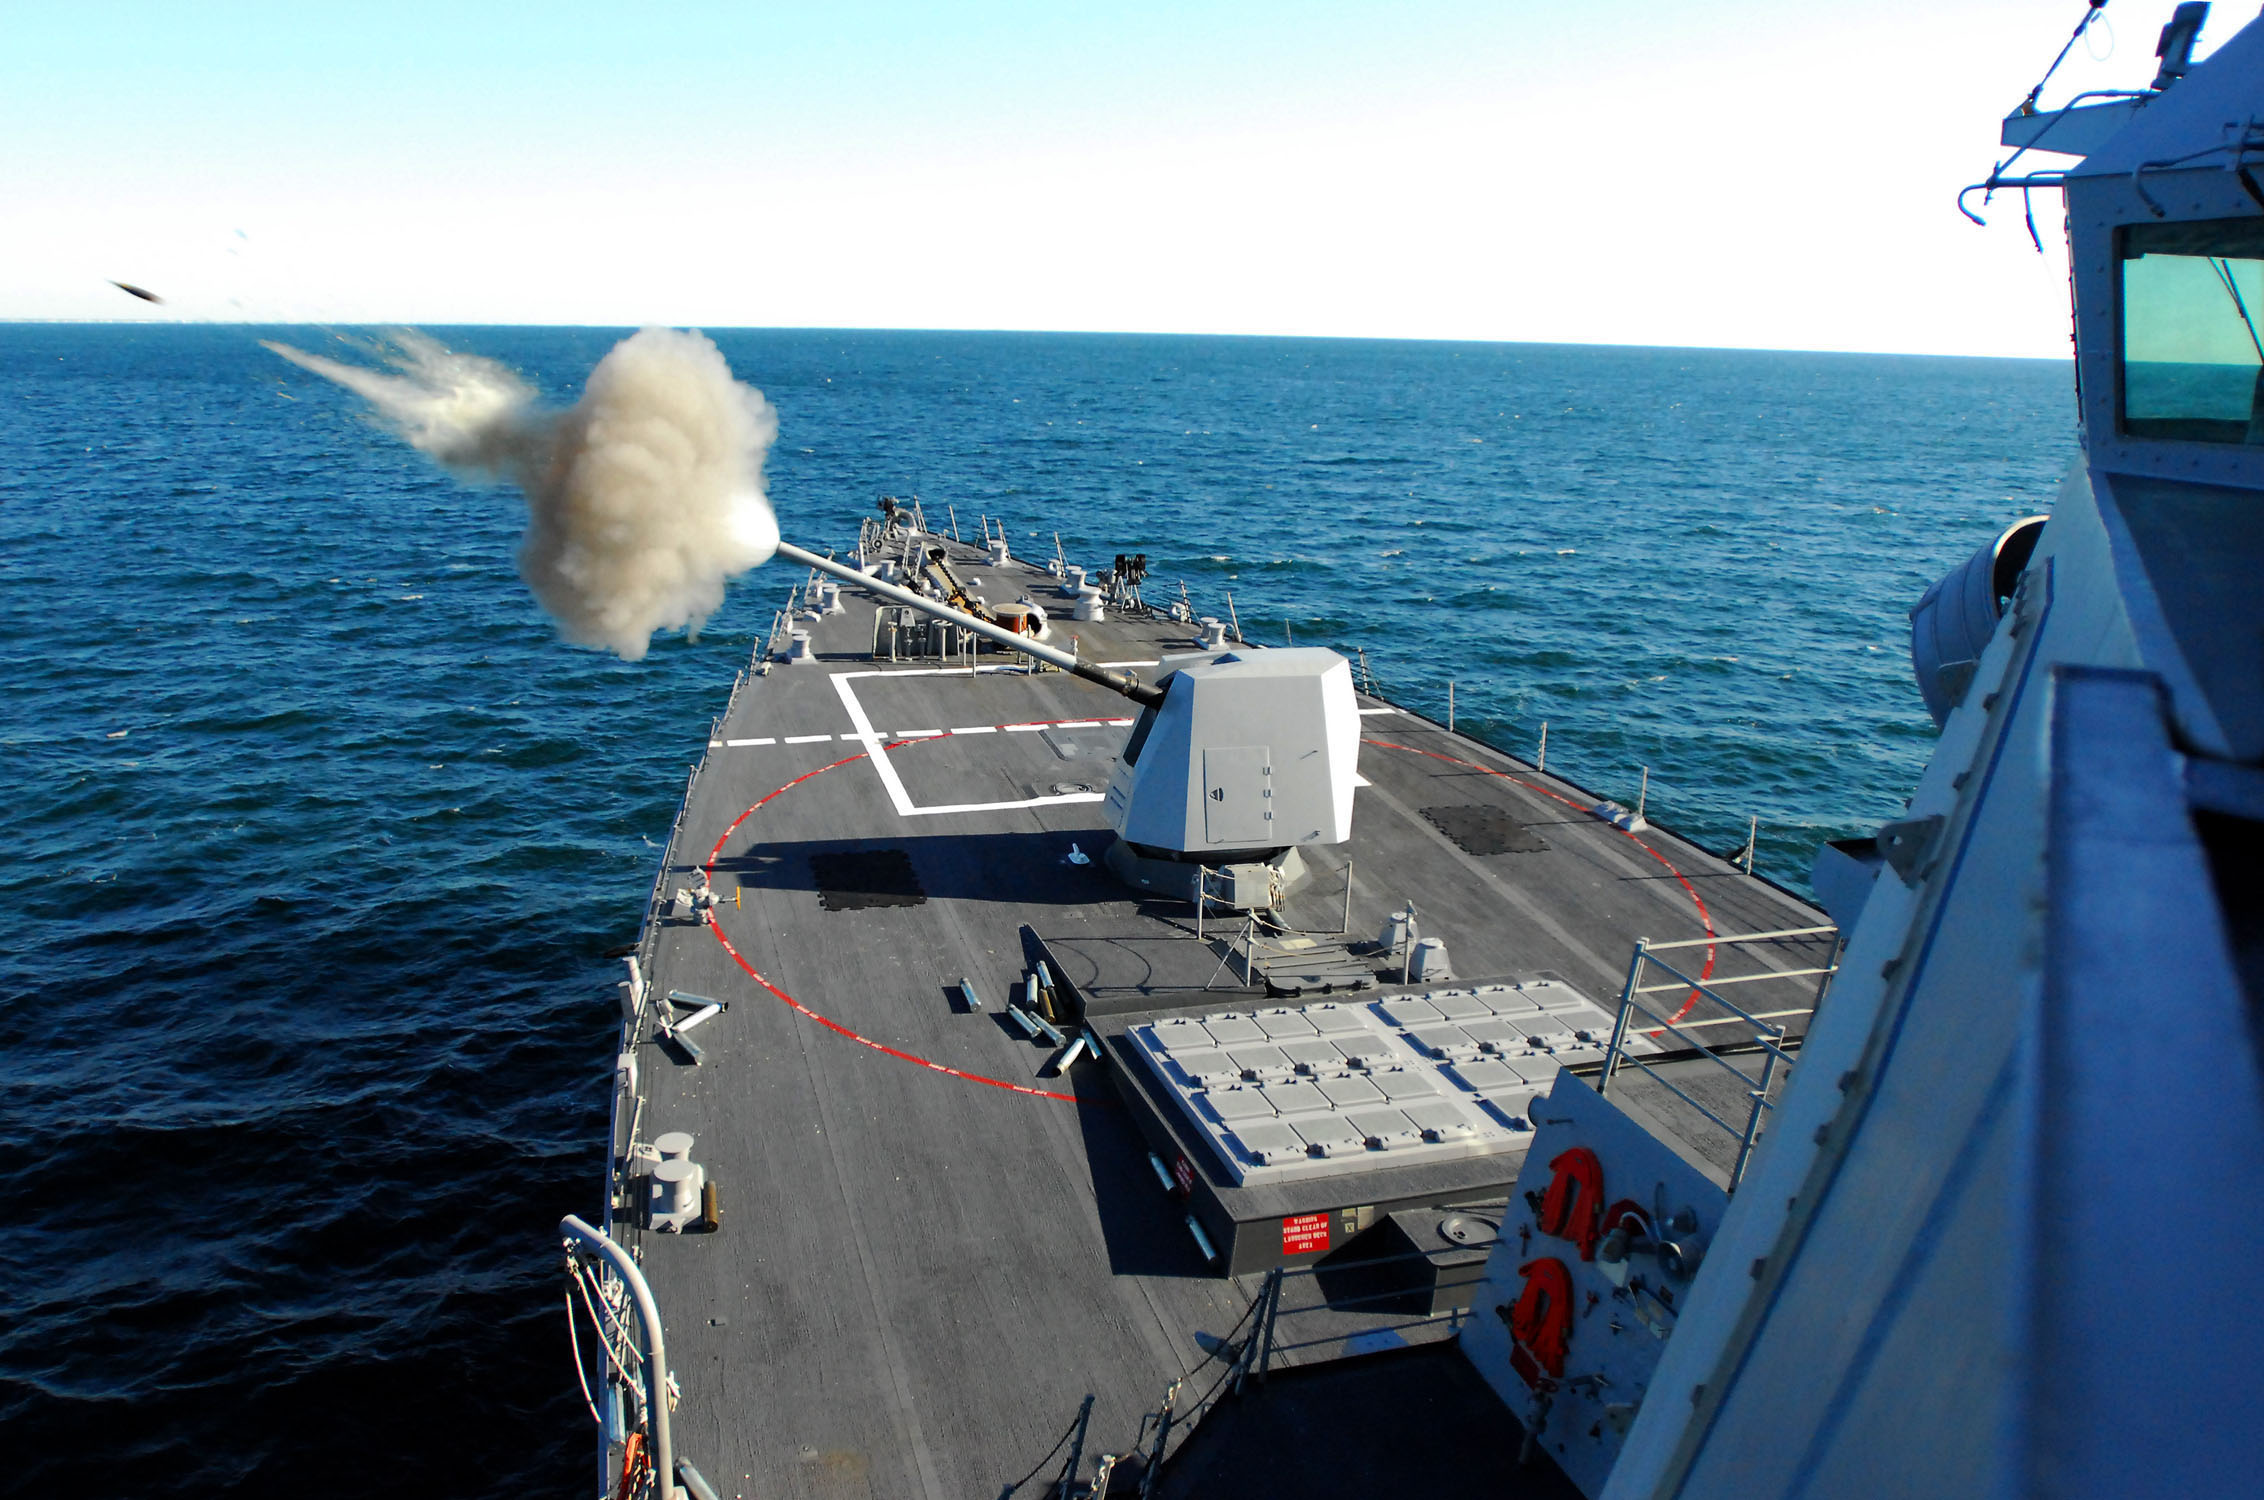 SDE continue to provide Type 26 MIFS safety support